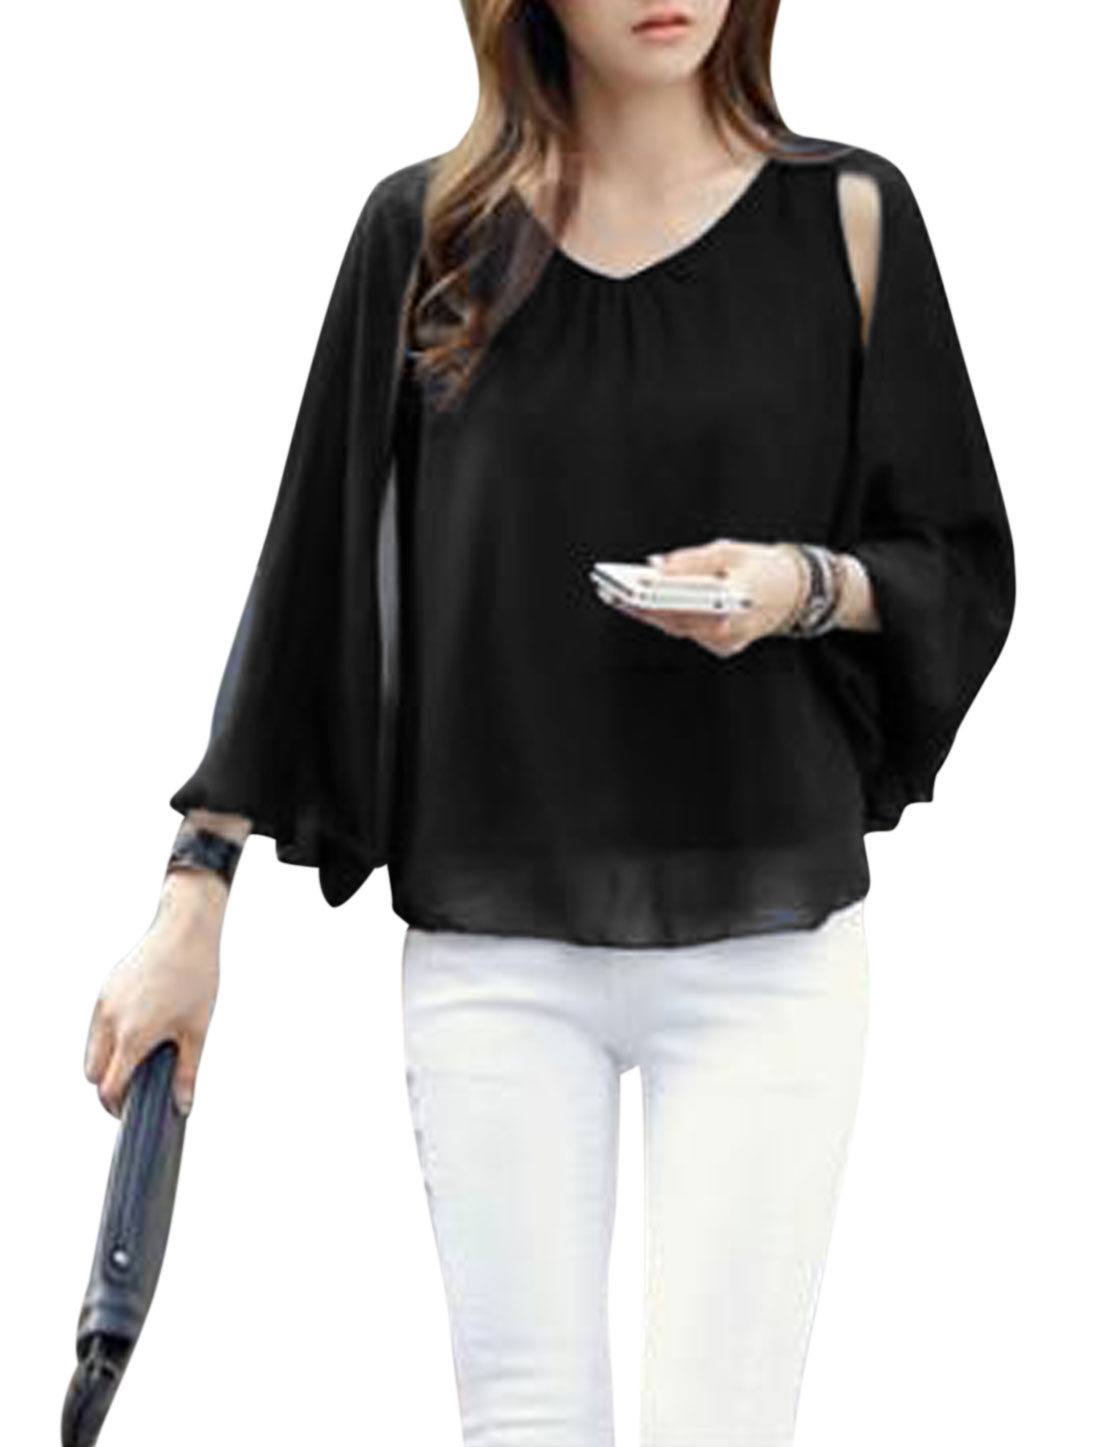 Women Sleeveless Round Neck Cape Style Layered Casual Blouse Black XS